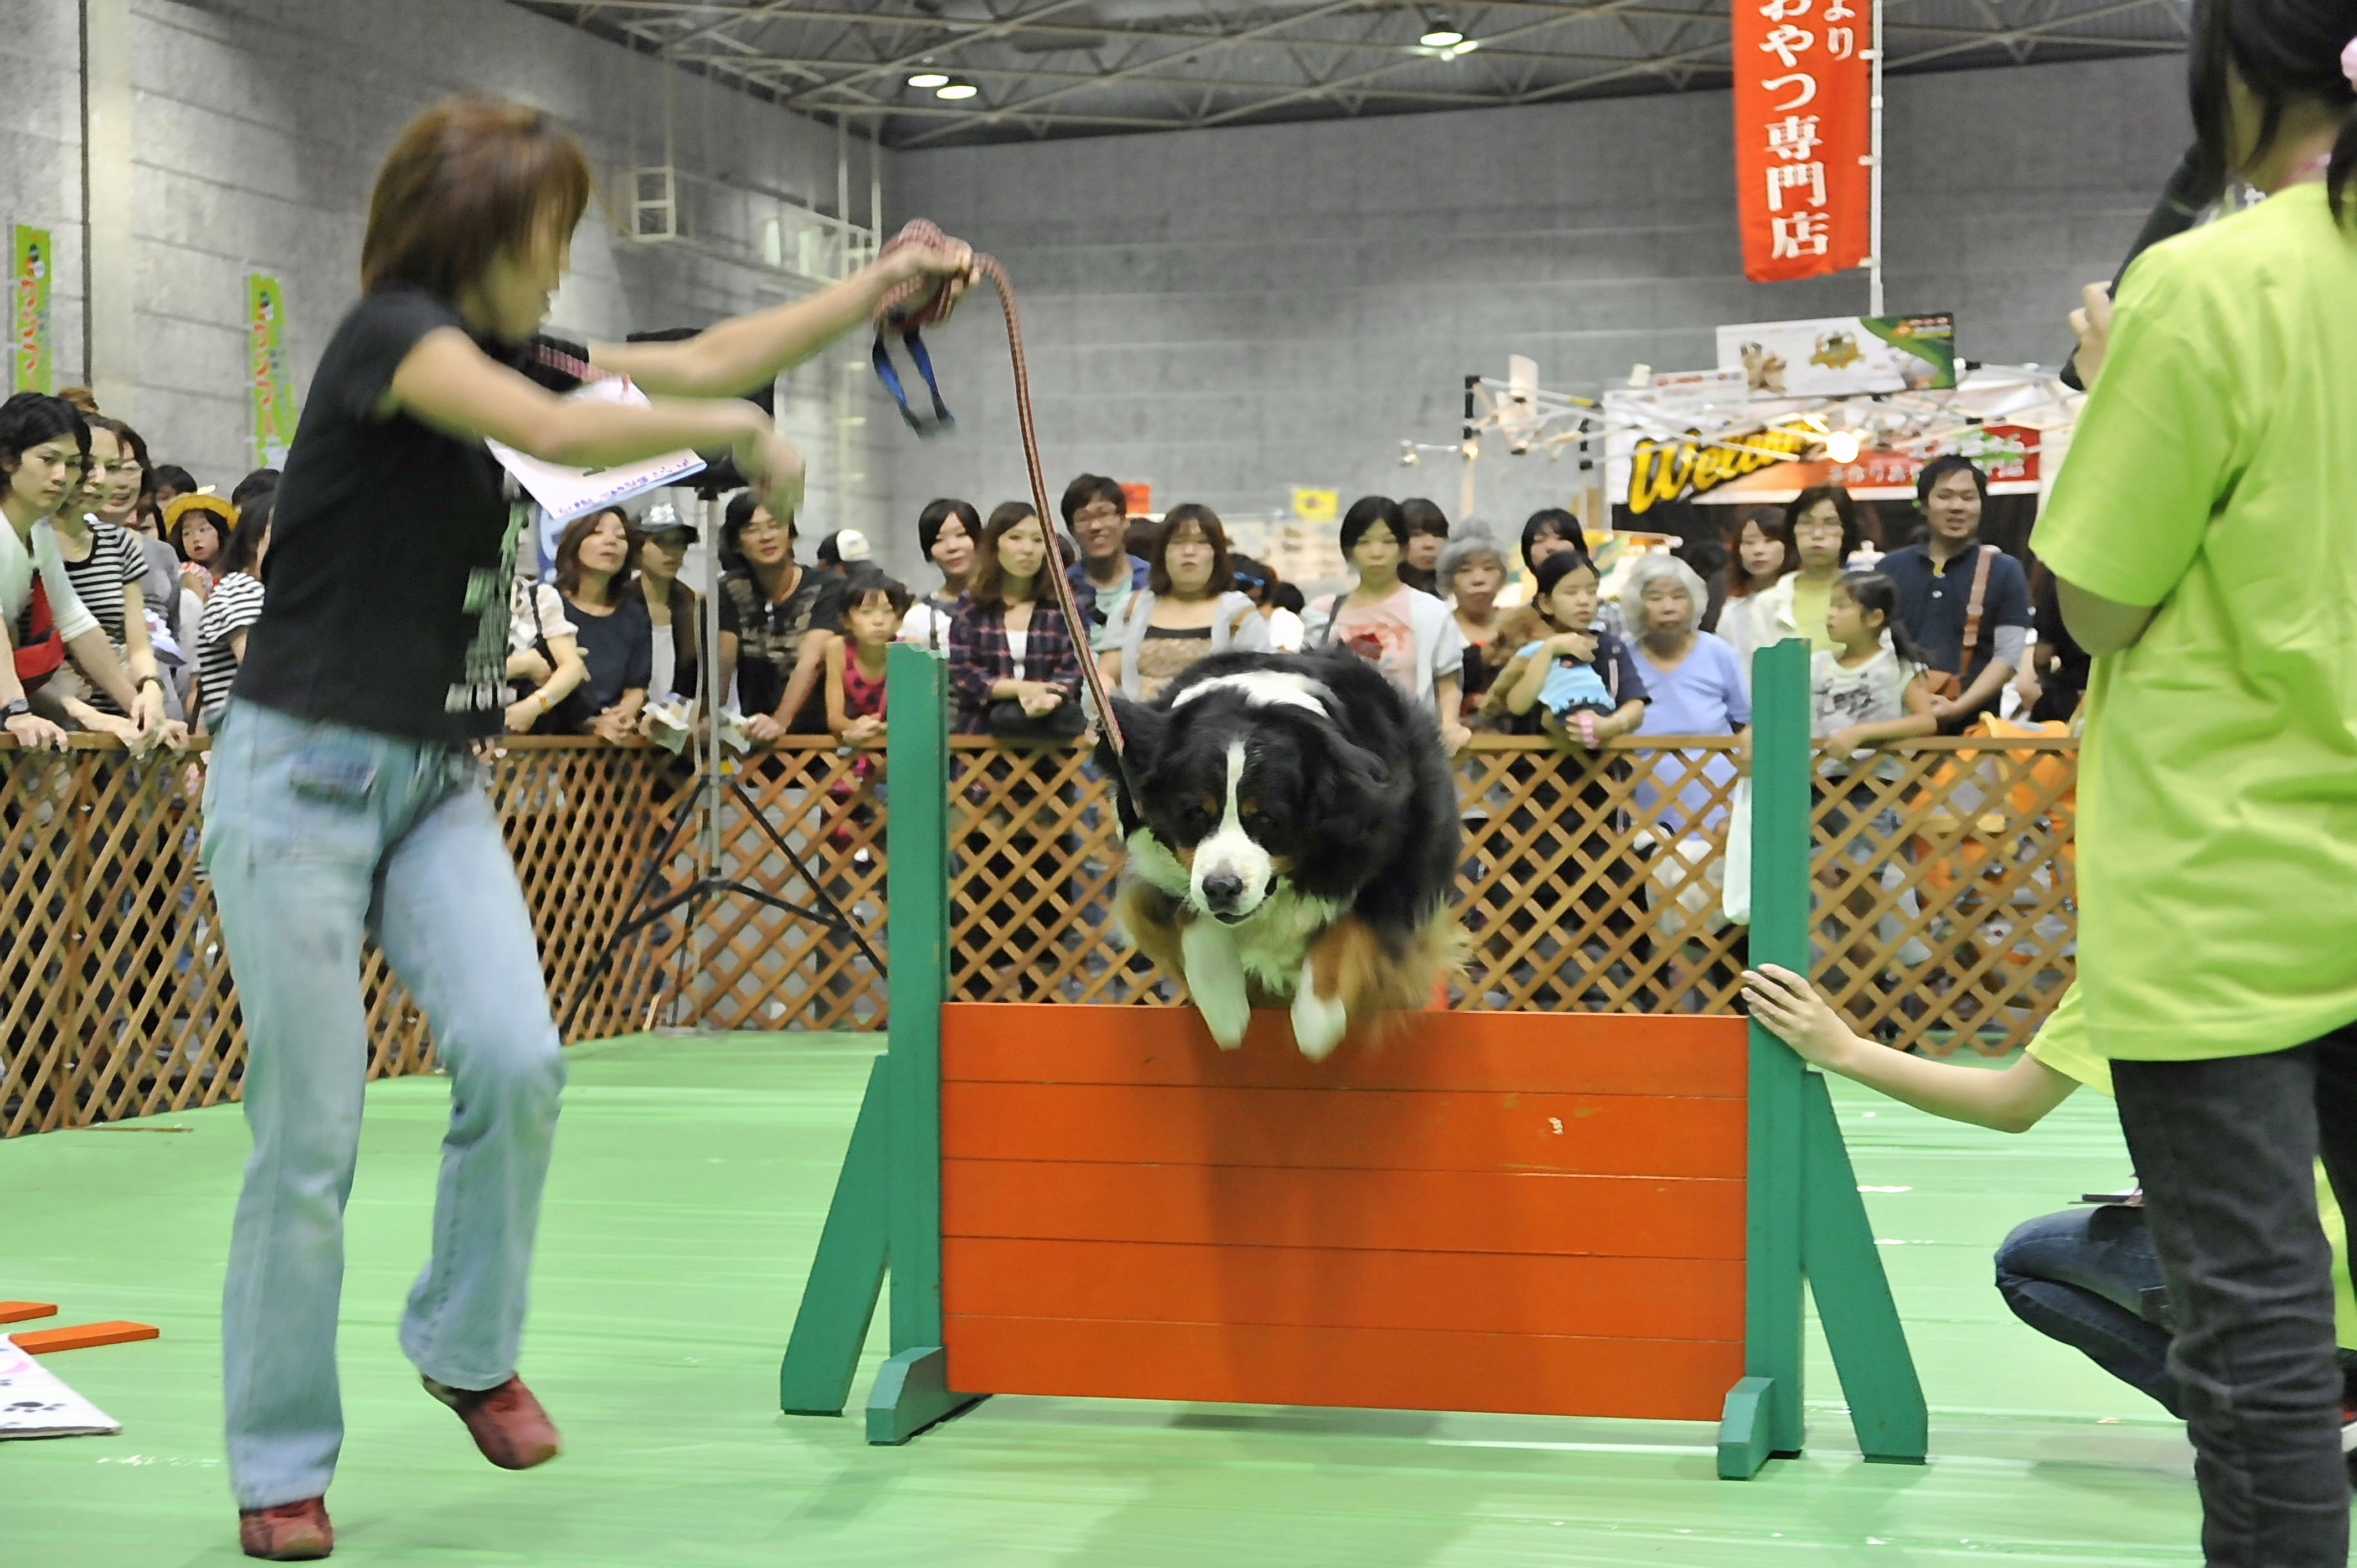 Furry friends: Pets take center stage at the Pet Haku industry fair. | © PET HAKU 2011